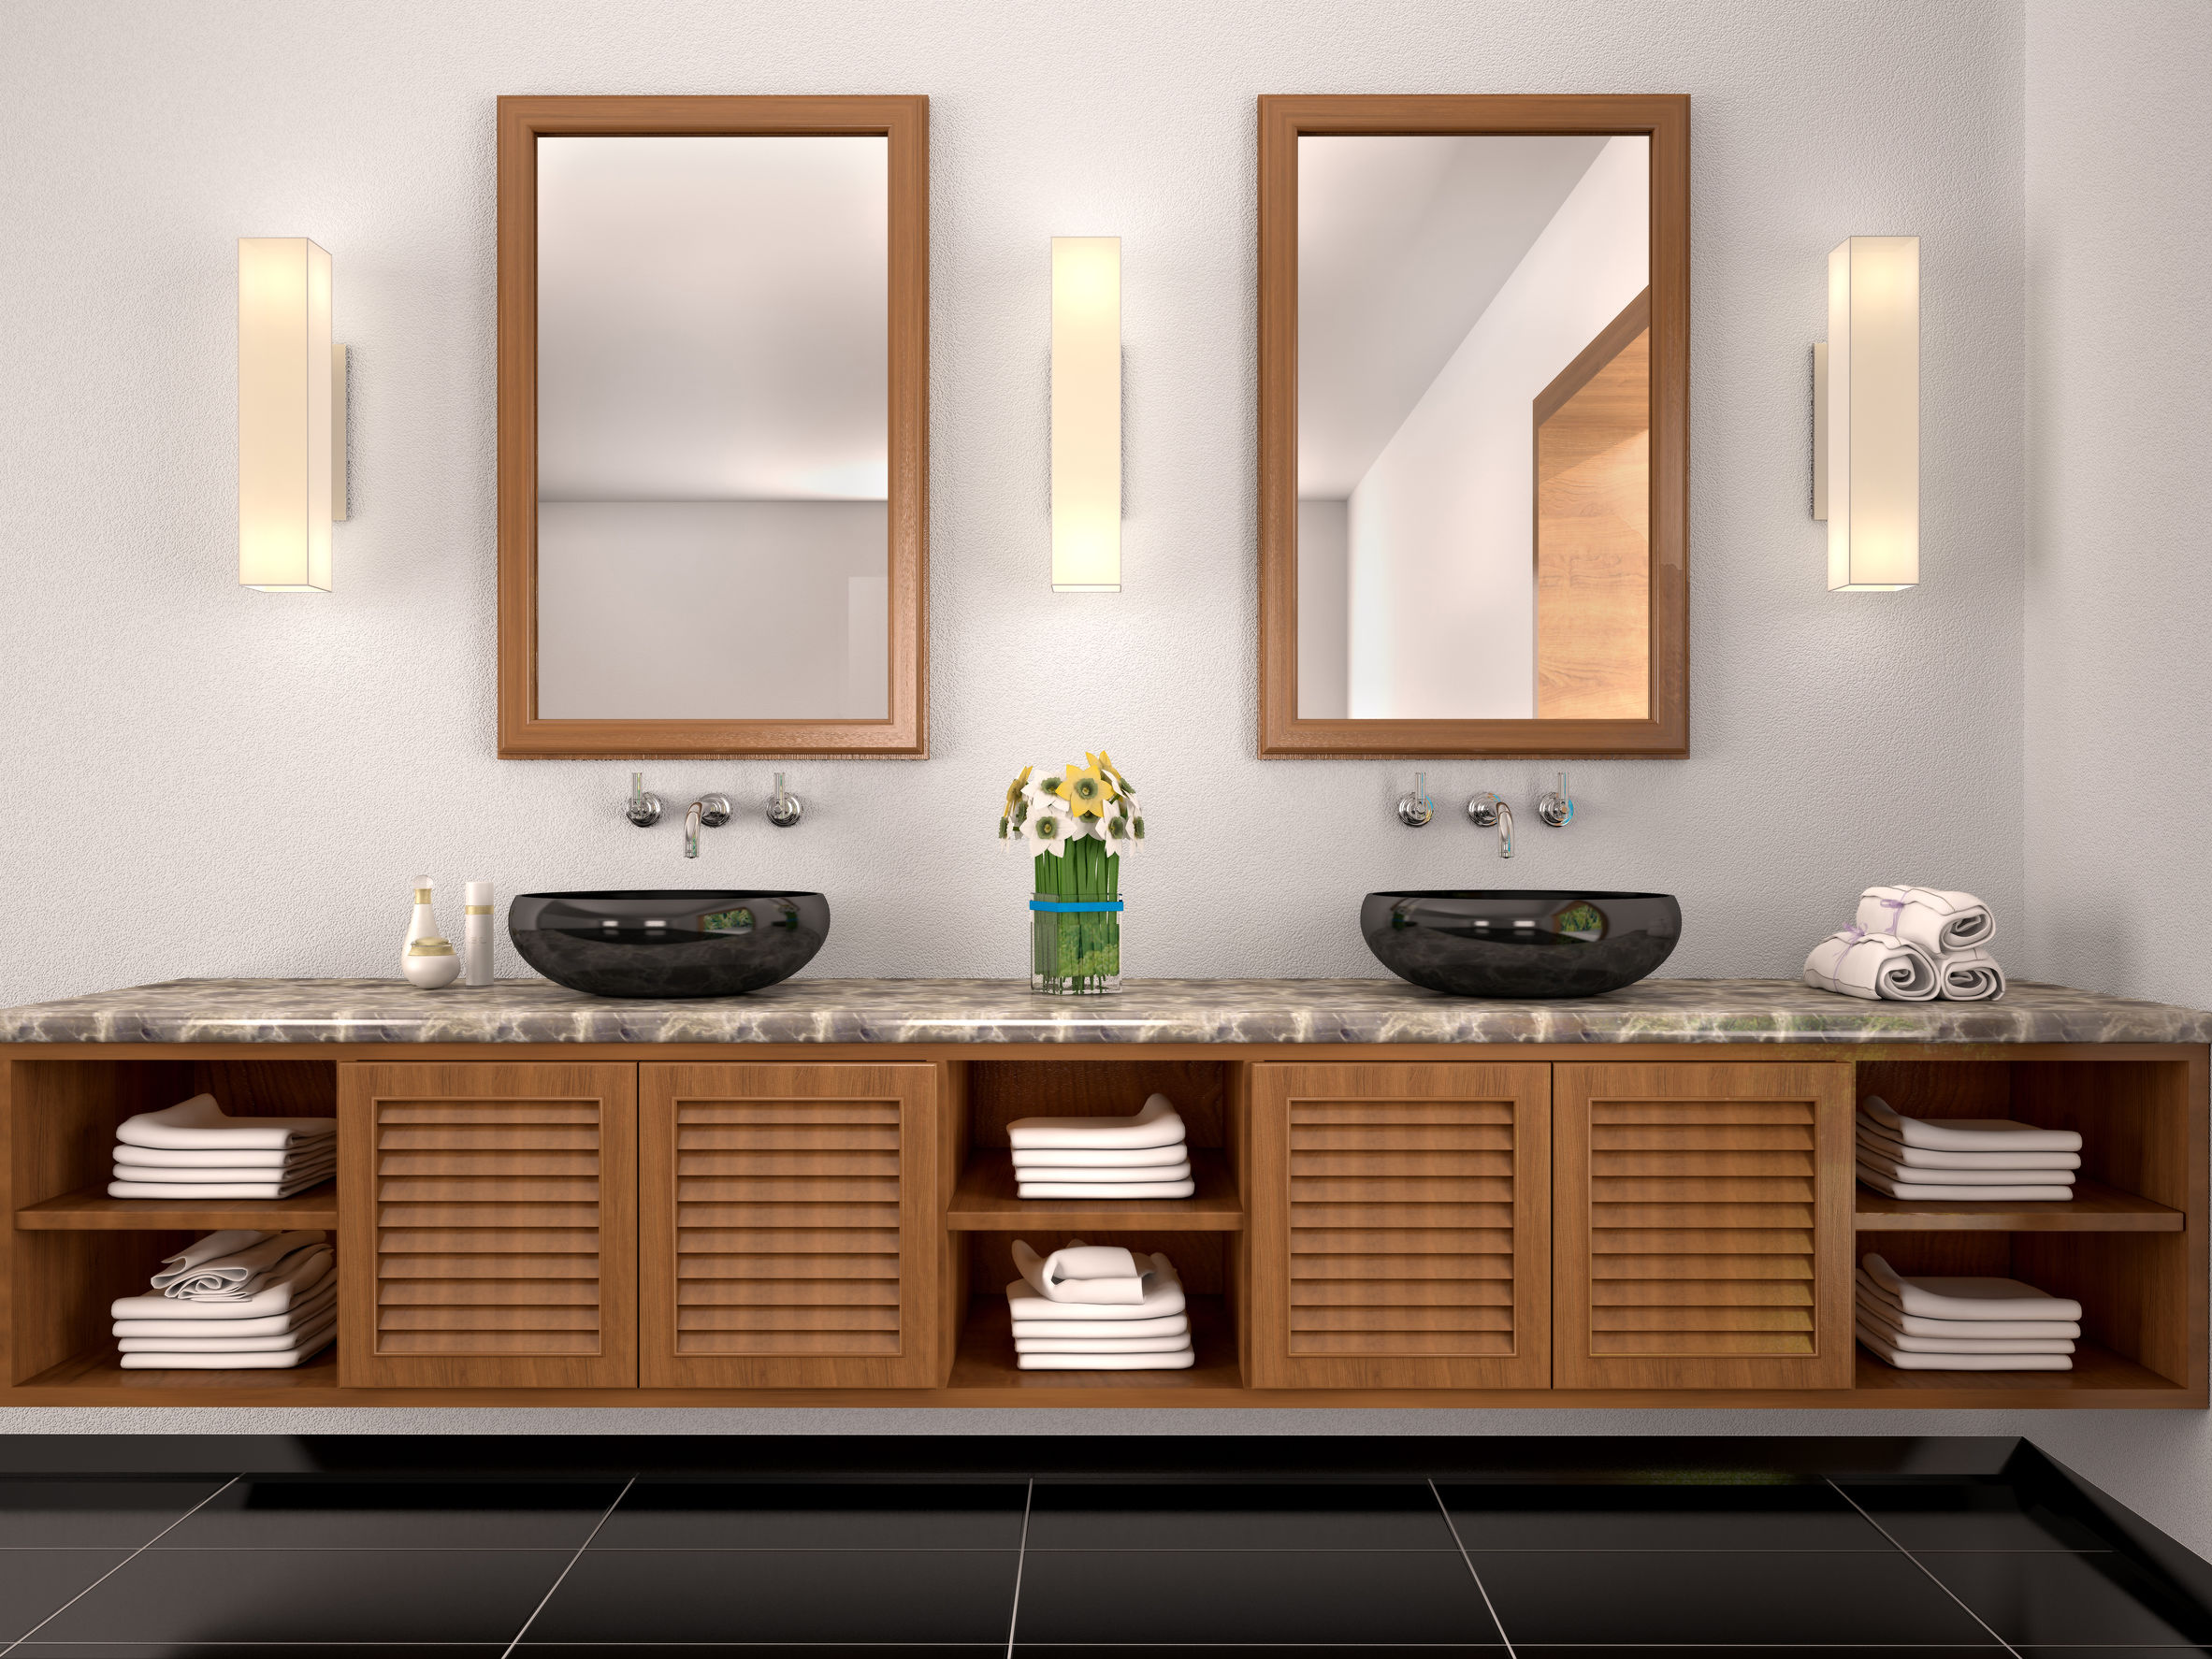 Bathroom trends to stay away from – double sink bathrooms